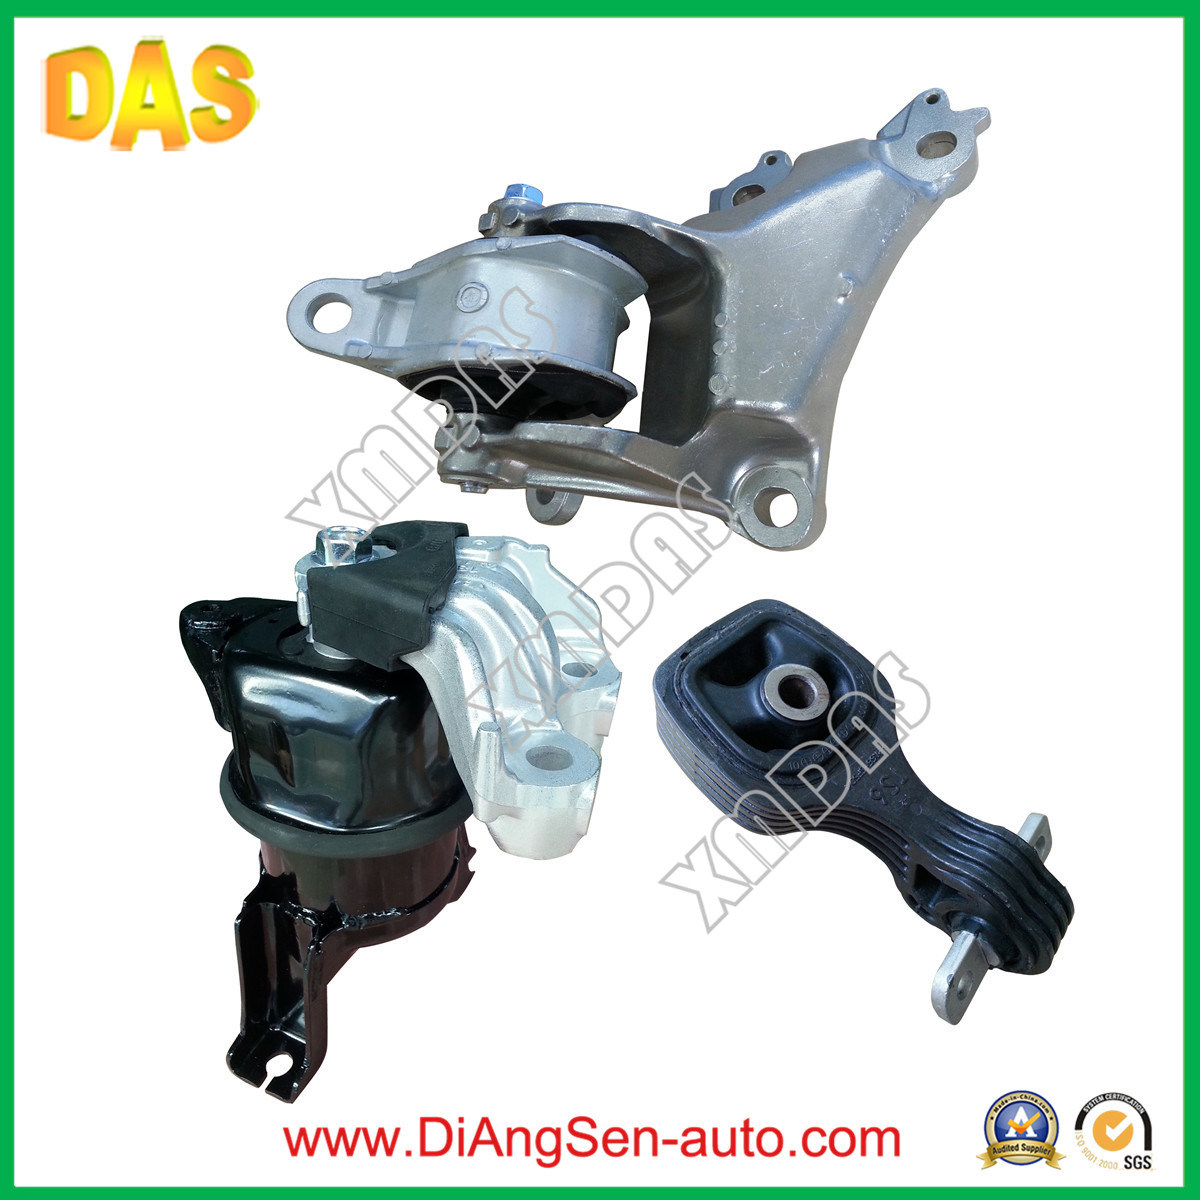 Auto Parts Motor Transmission Engine Mount for Honda Civic 2012 Car (50820-TS6-H03, 50820-TR0-A81, 50820-TS6-H81)